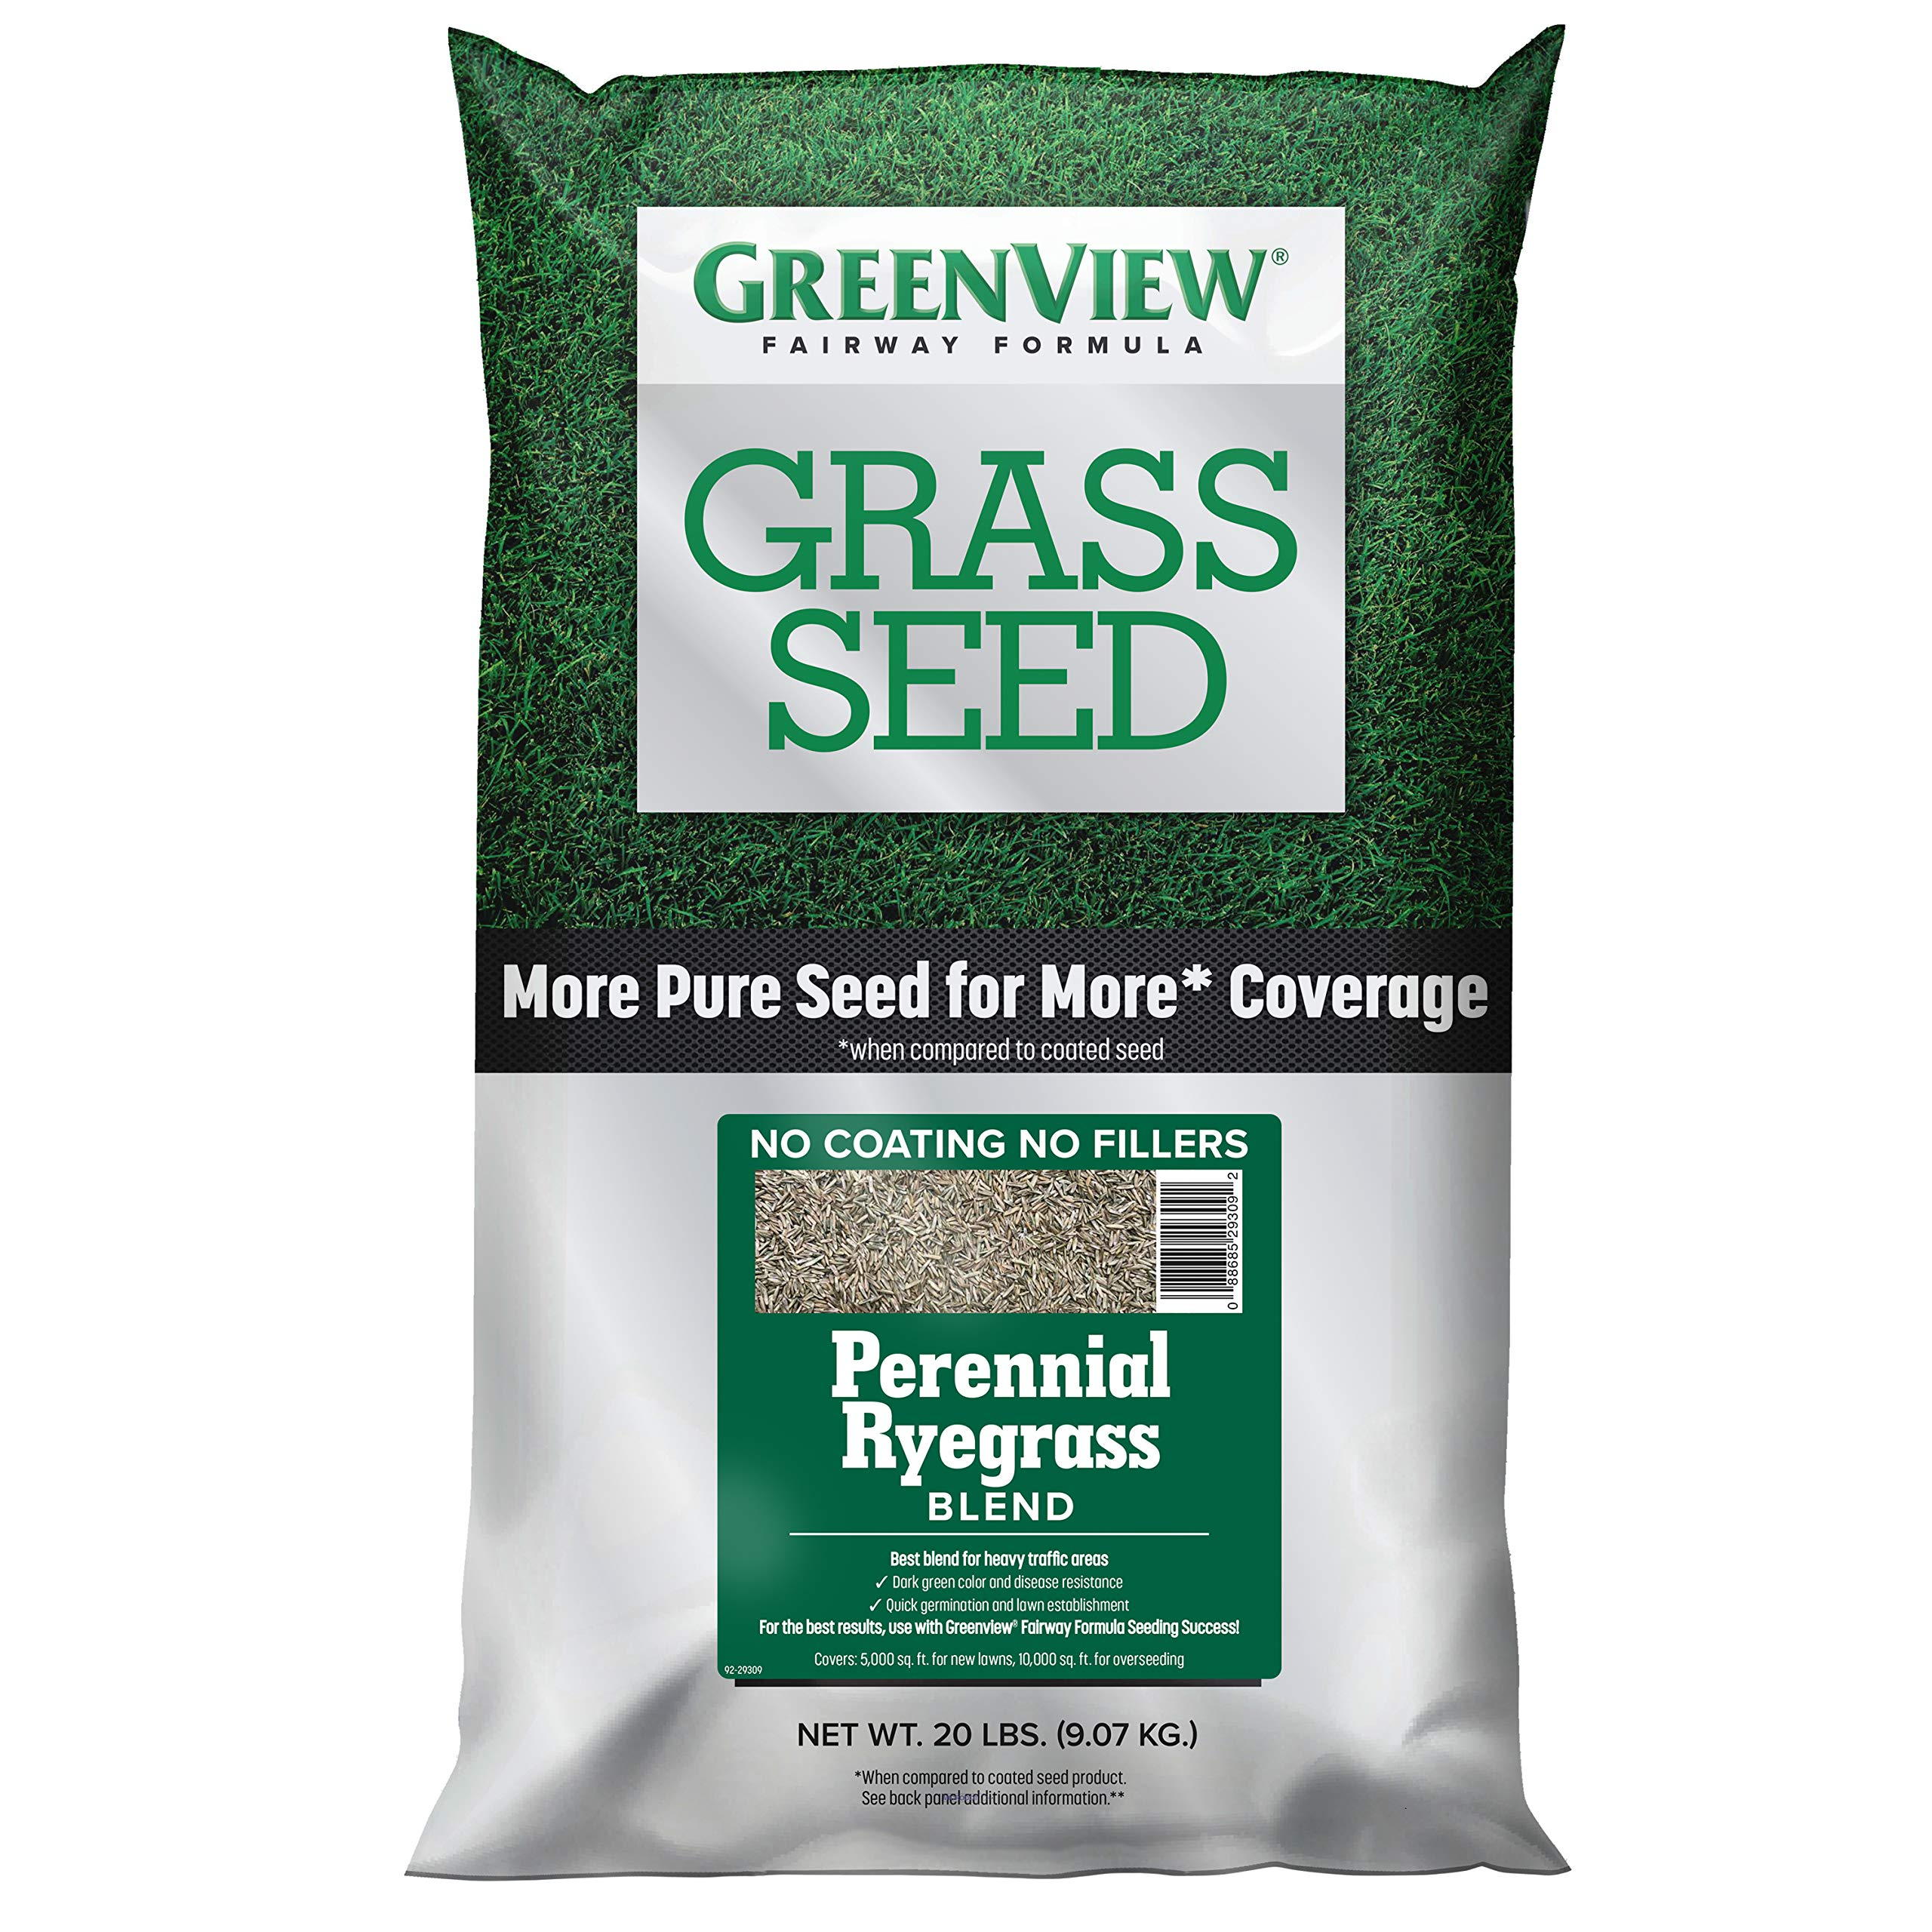 GreenView 2829355 Fairway Formula Grass Seed Perennial Ryegrass Blend, 20 lb.